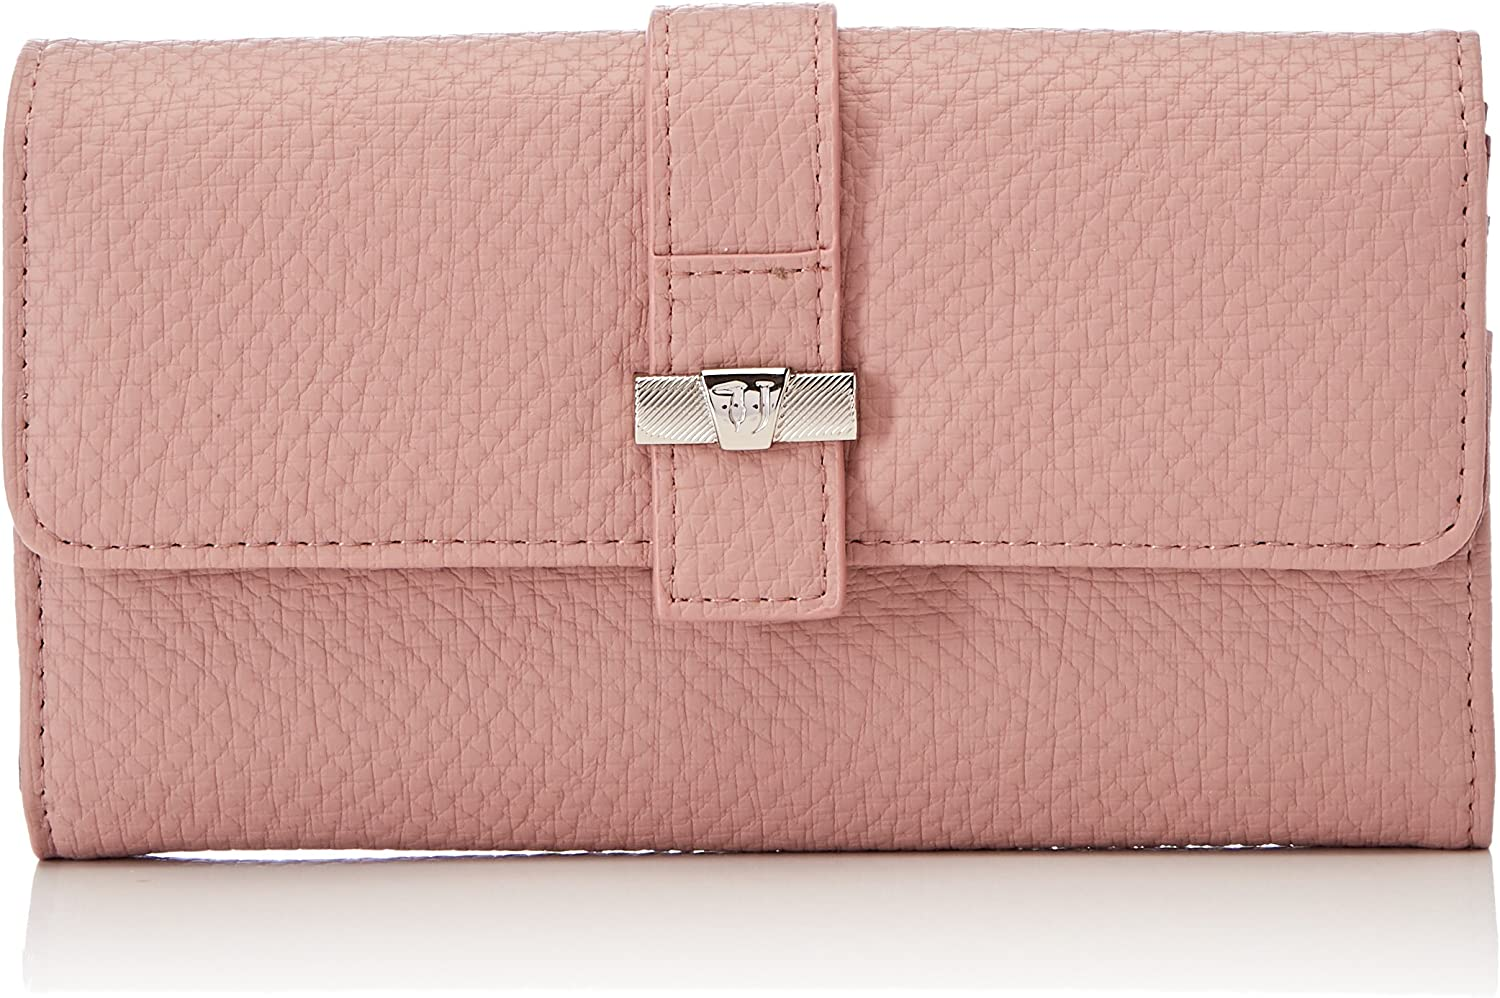 Trussardi Jeans Suzanne Ecoleather Smooth Wallet - Carteras Mujer